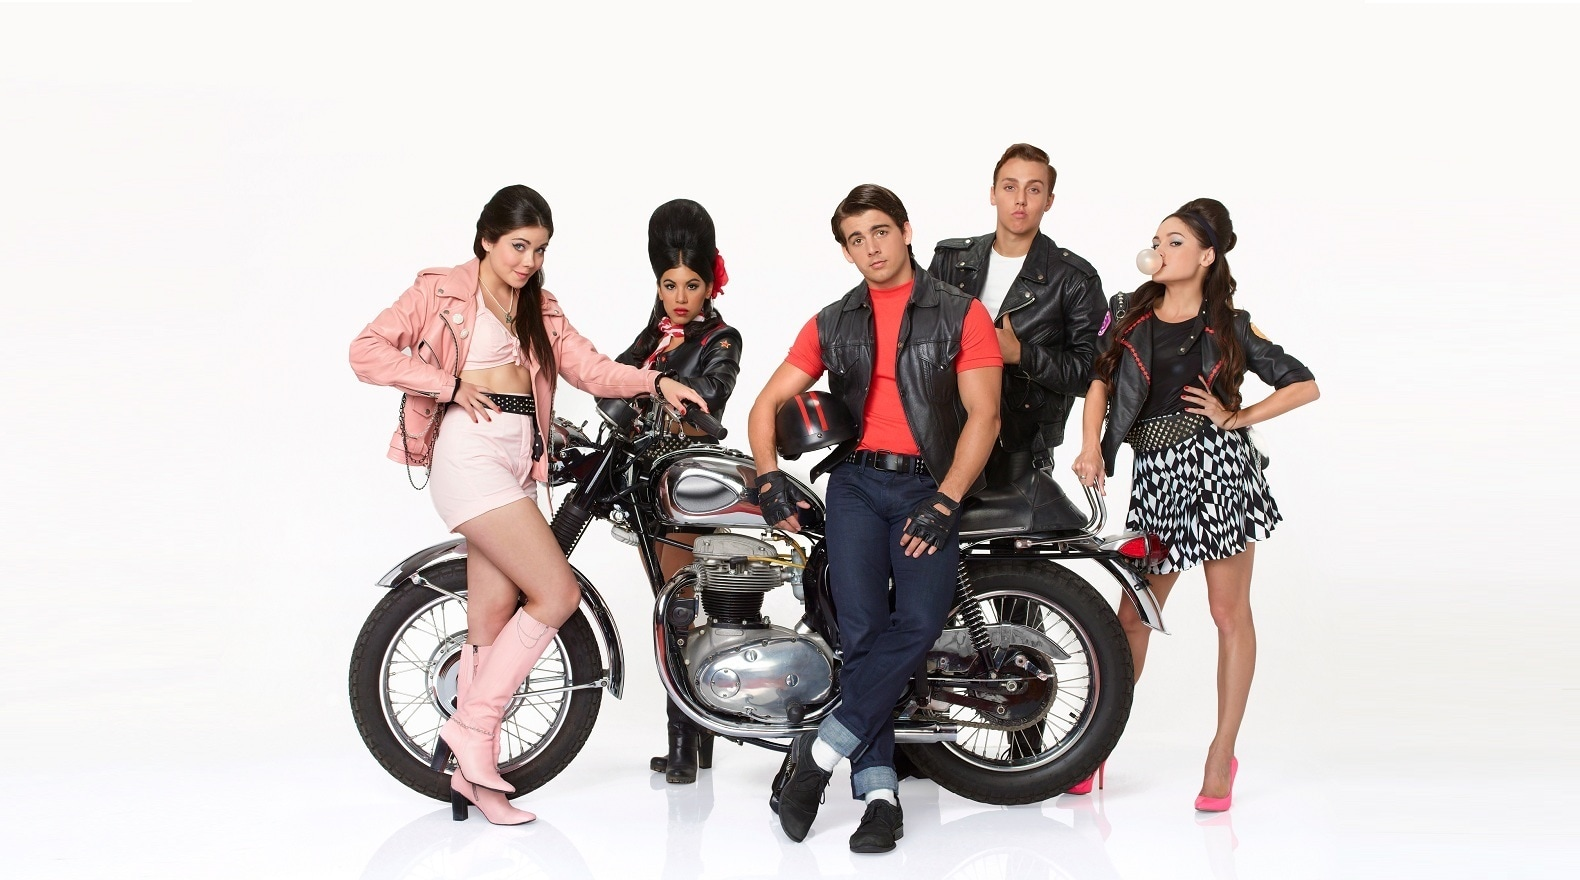 From Teen Beach Movie Toys : Teen beach movie biker style gallery disney channel